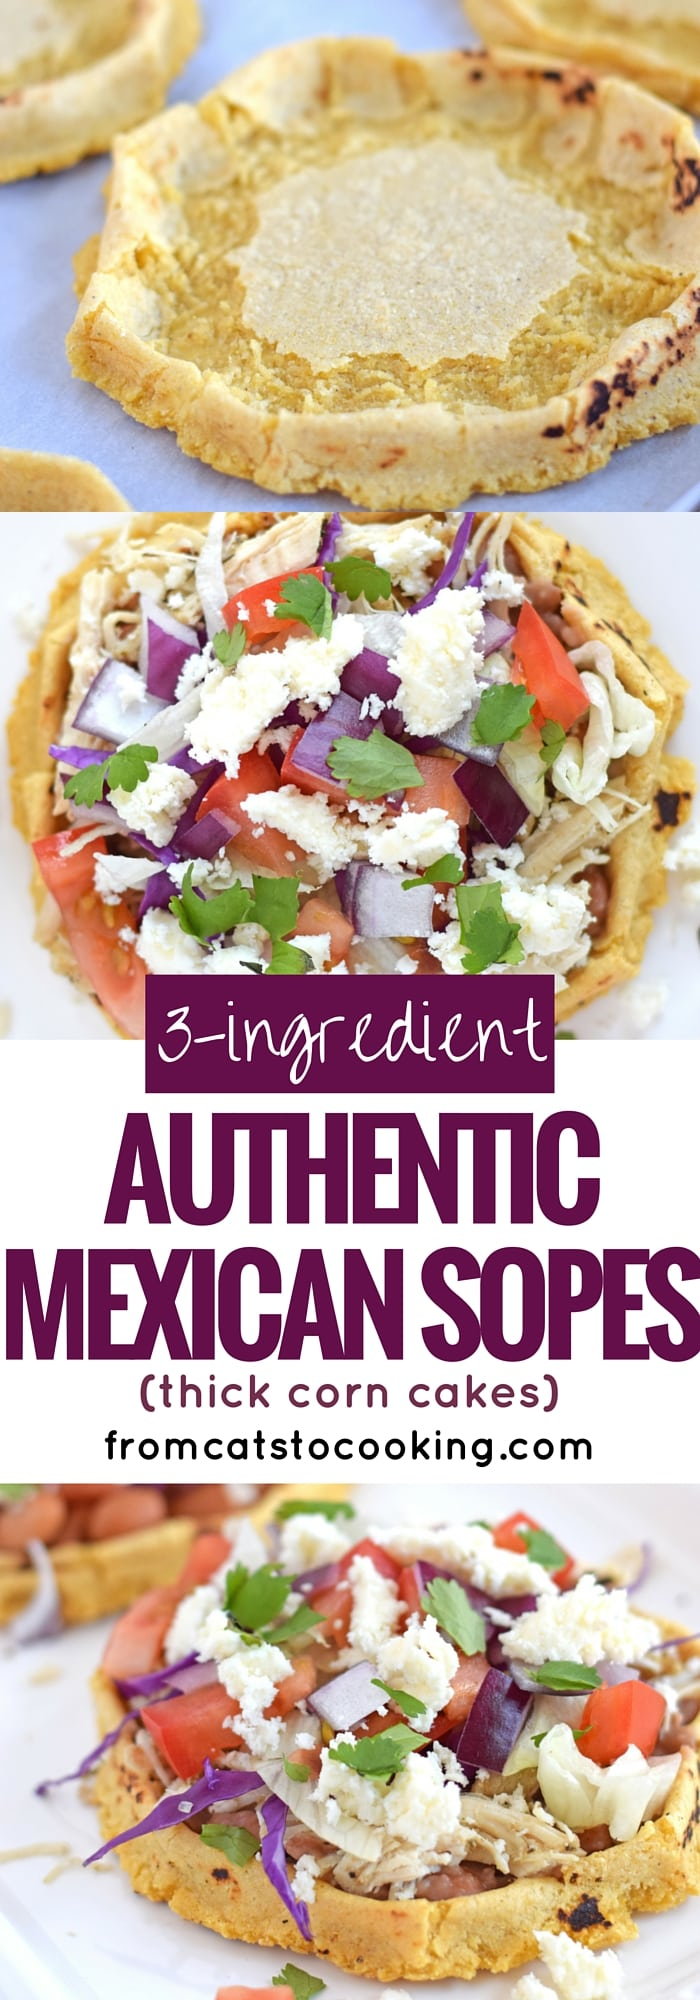 3-Ingredient Authentic Mexican Sopes are a thick corn cake that you can top with any ingredients your little tummy desires. I like to think of them as a thick corn tortilla boat because they're made exactly like a corn tortilla except the edges are pinched up to create a little well in the middle. They're gluten free, vegetarian, vegan and dairy free. They also make a great appetizer or have a couple for dinner. #mexican #cincodemayo #sopes